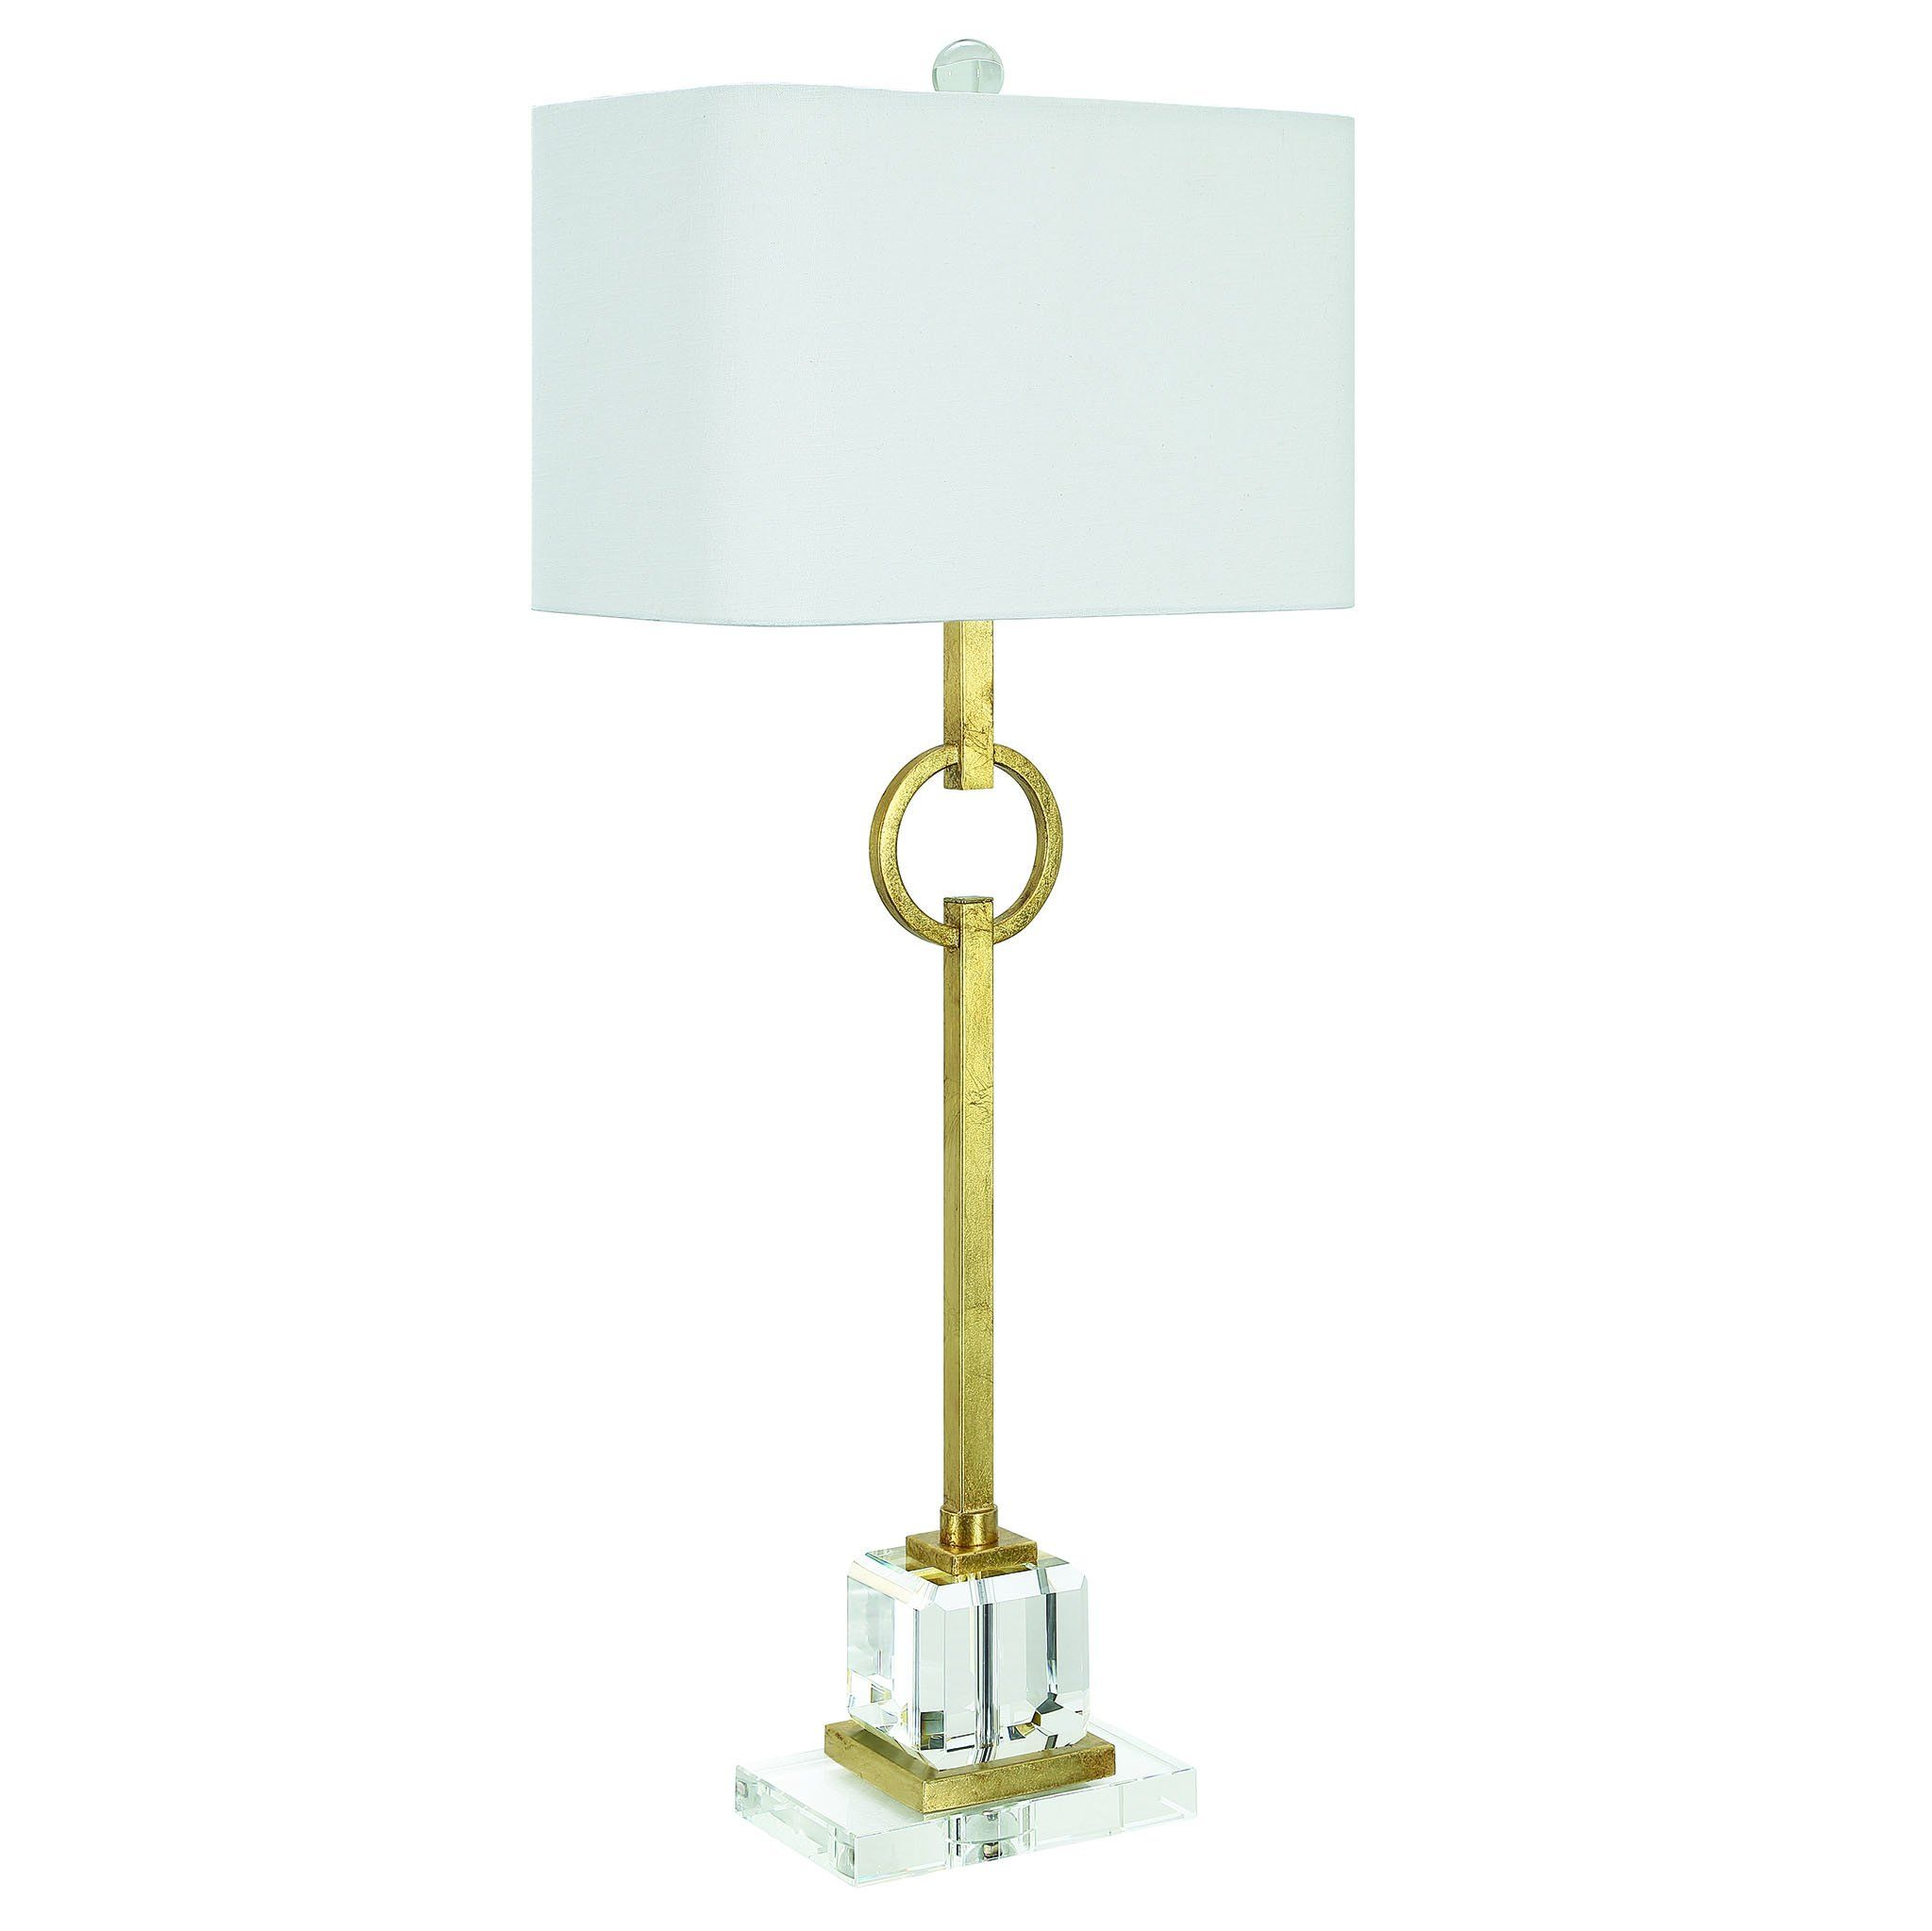 Couture Lighting Elaina Table Lamp Gold Gold Table Lamp Lamp Buffet Table Lamps